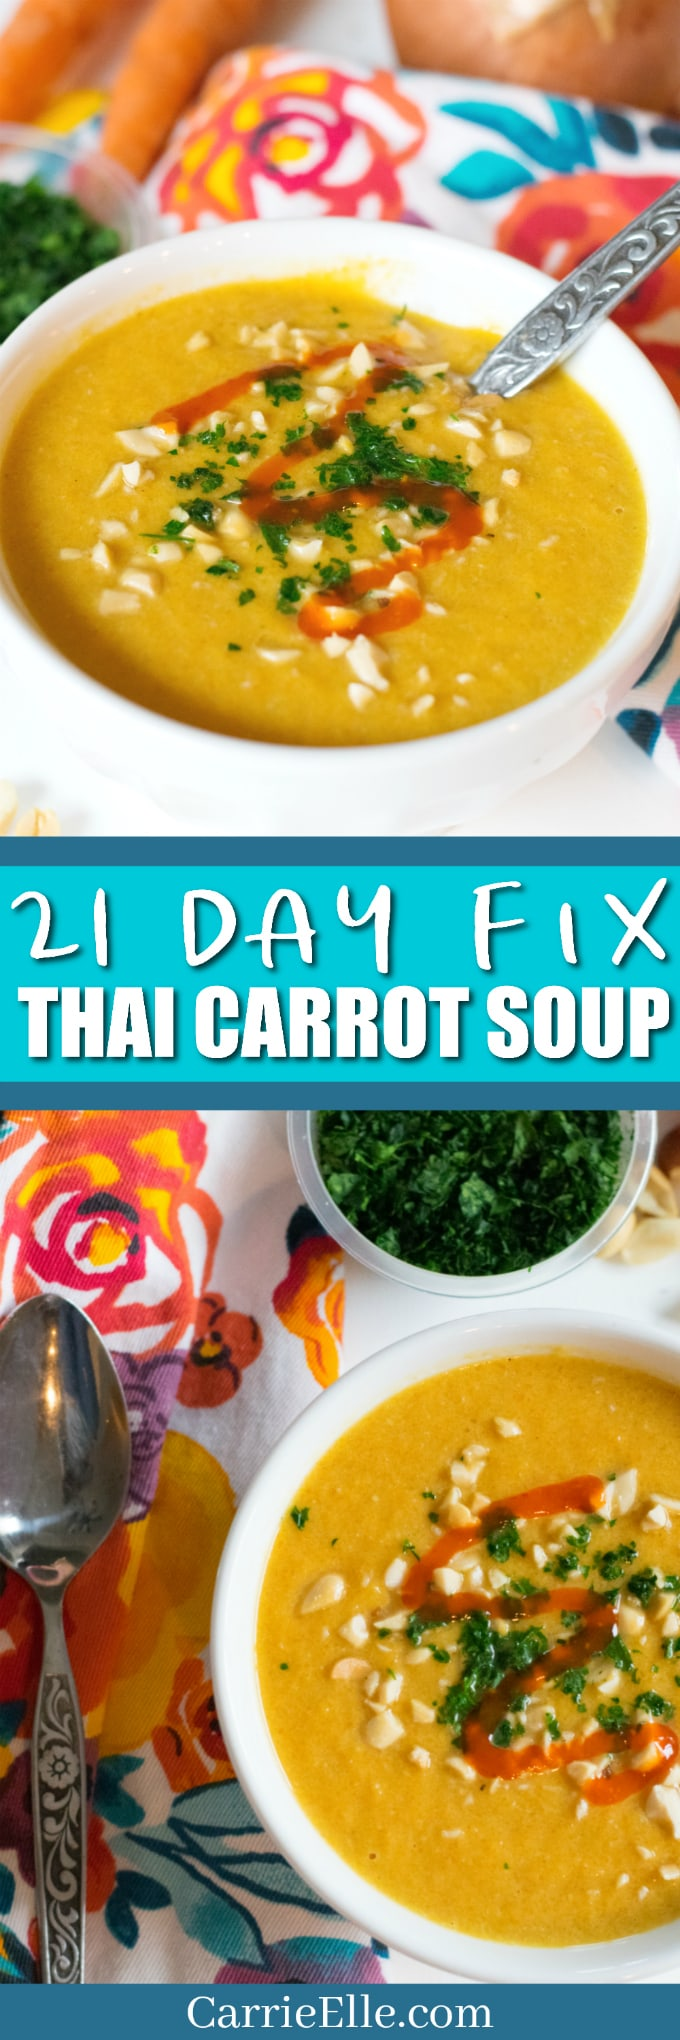 21 Day Fix Thai Carrot Soup